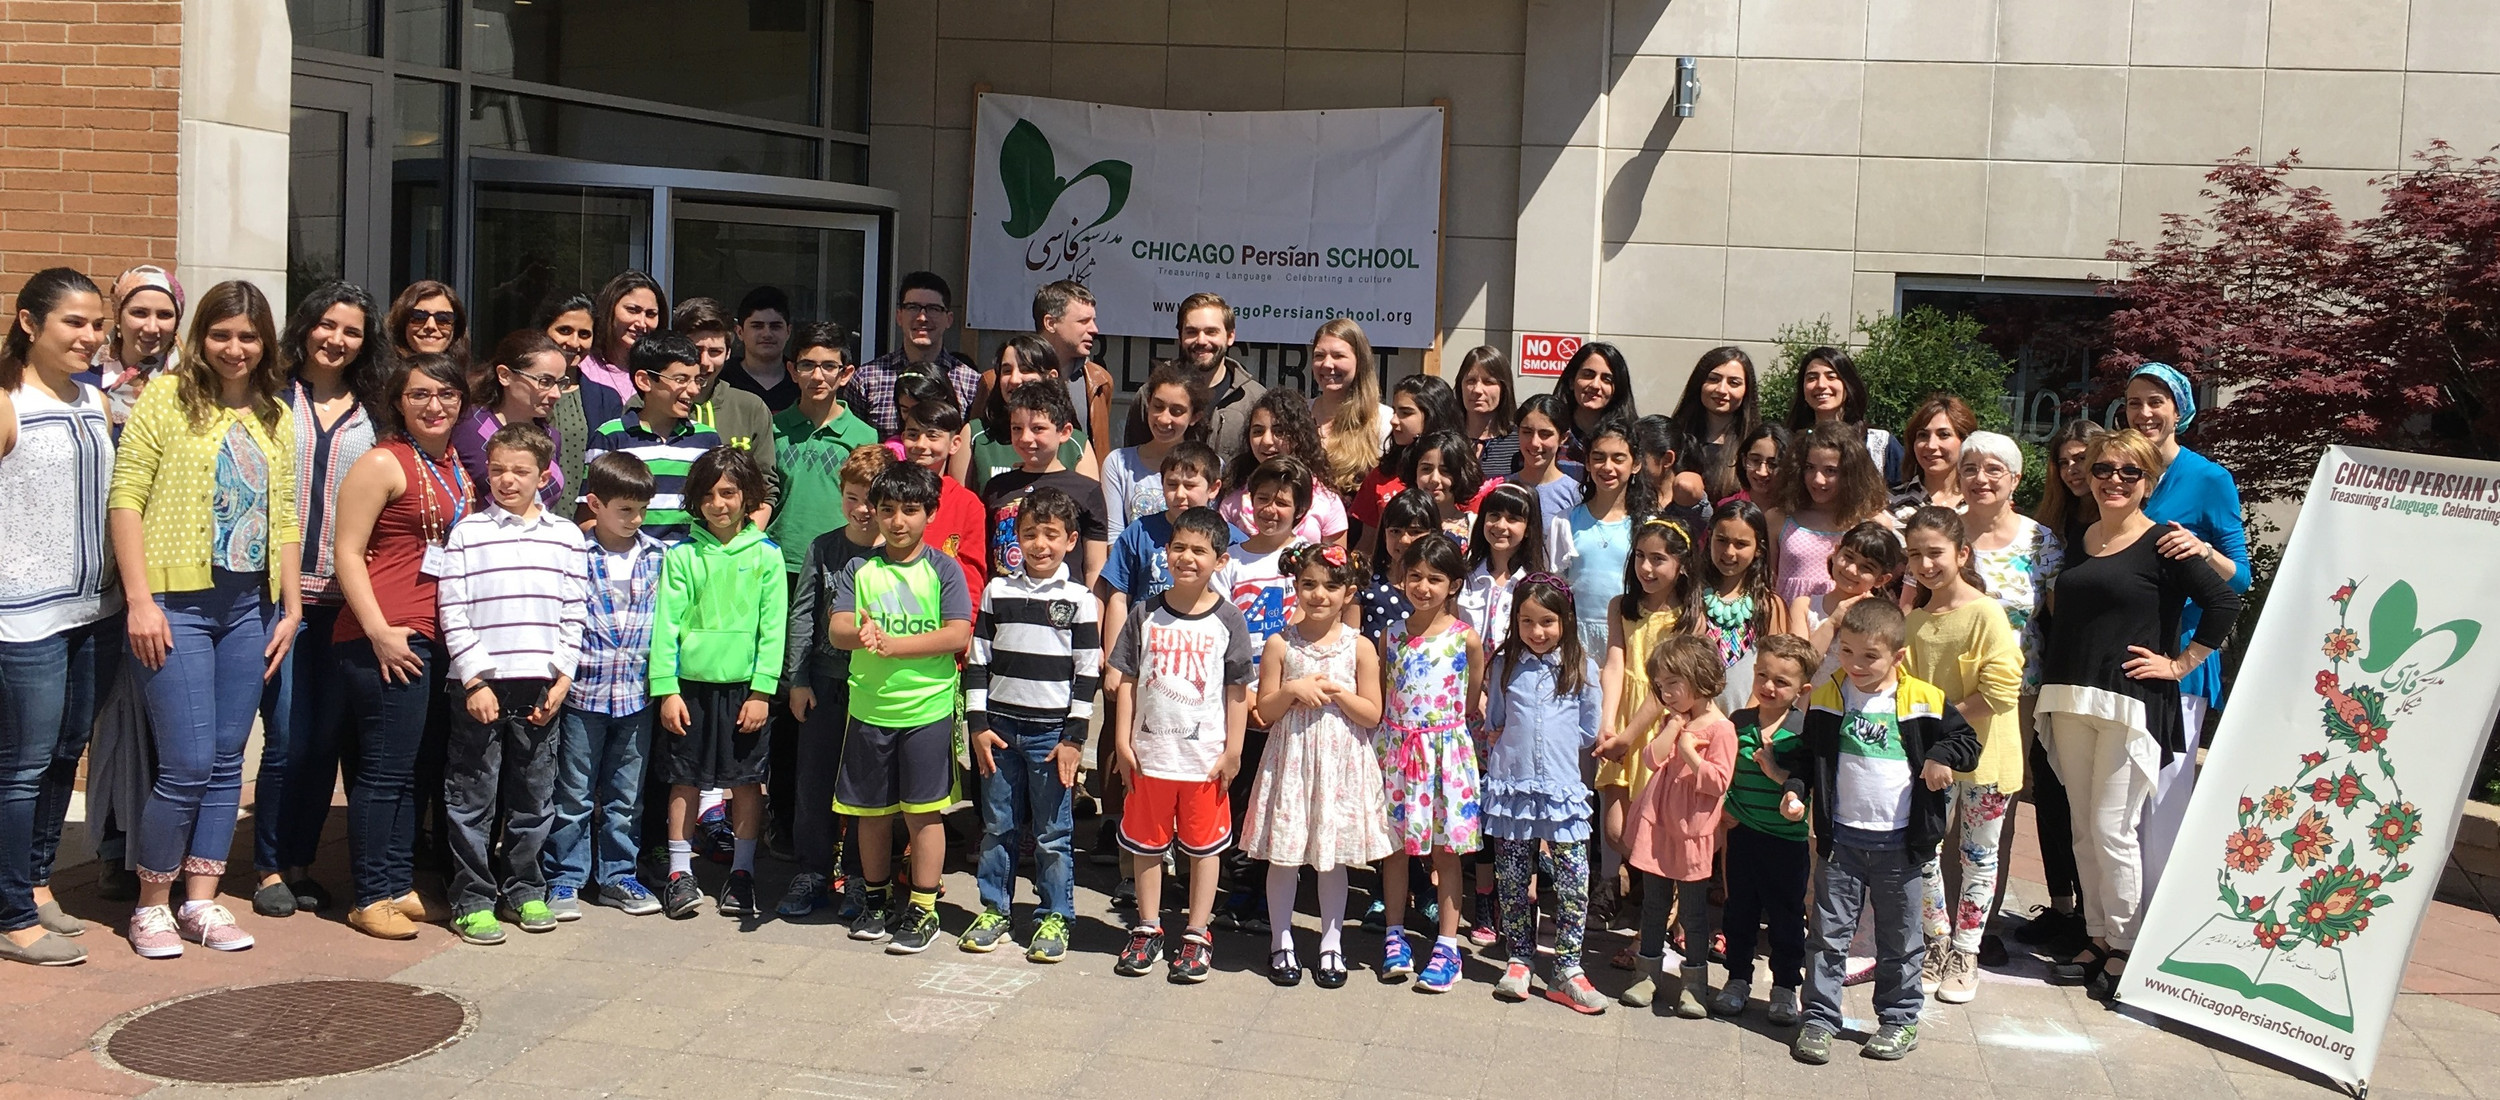 Chicago Persian School - What We Offer